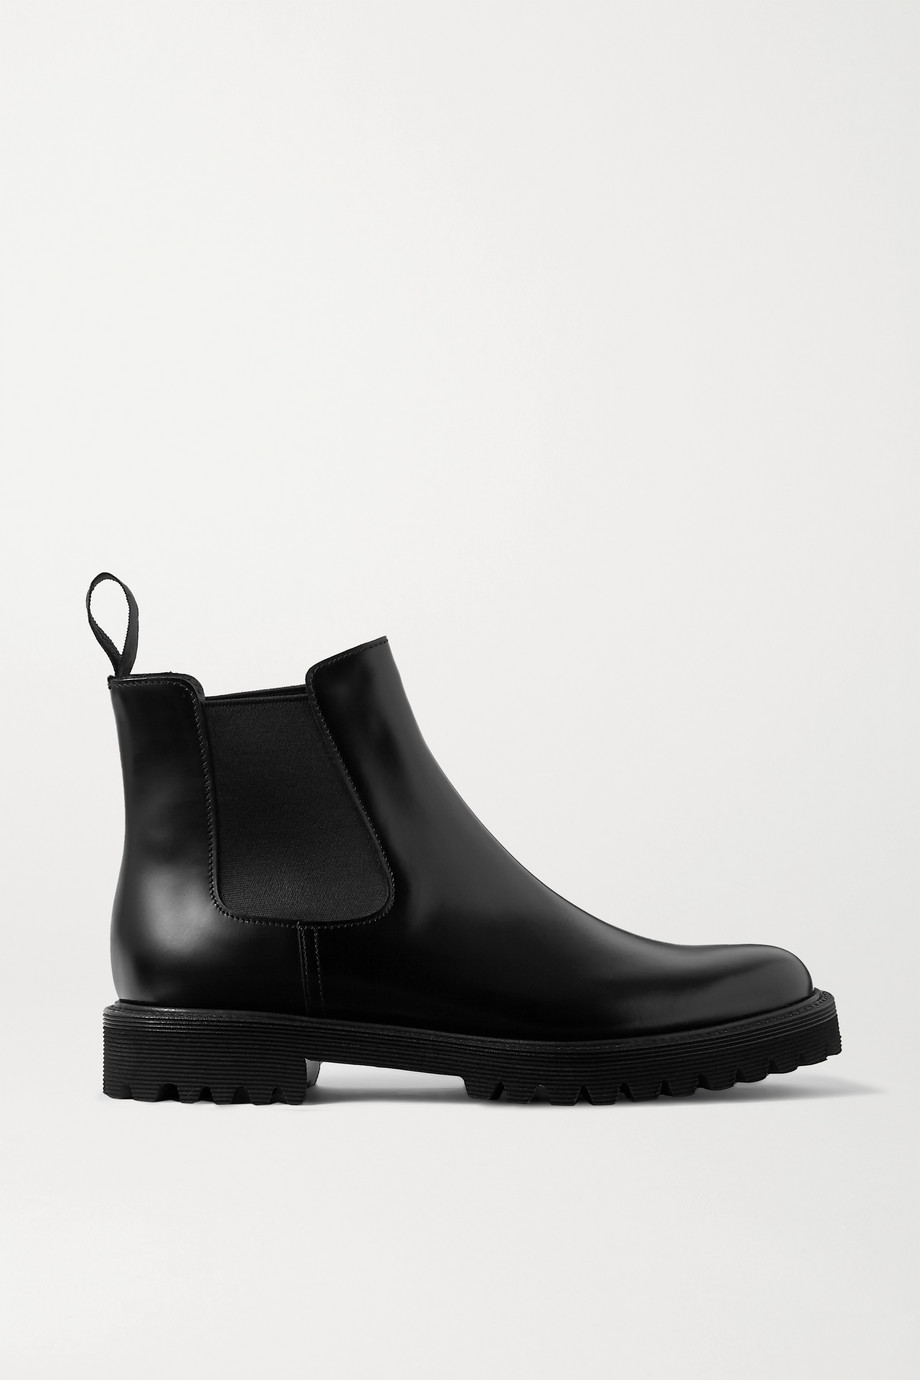 CHURCH'S Nirah leather Chelsea boots